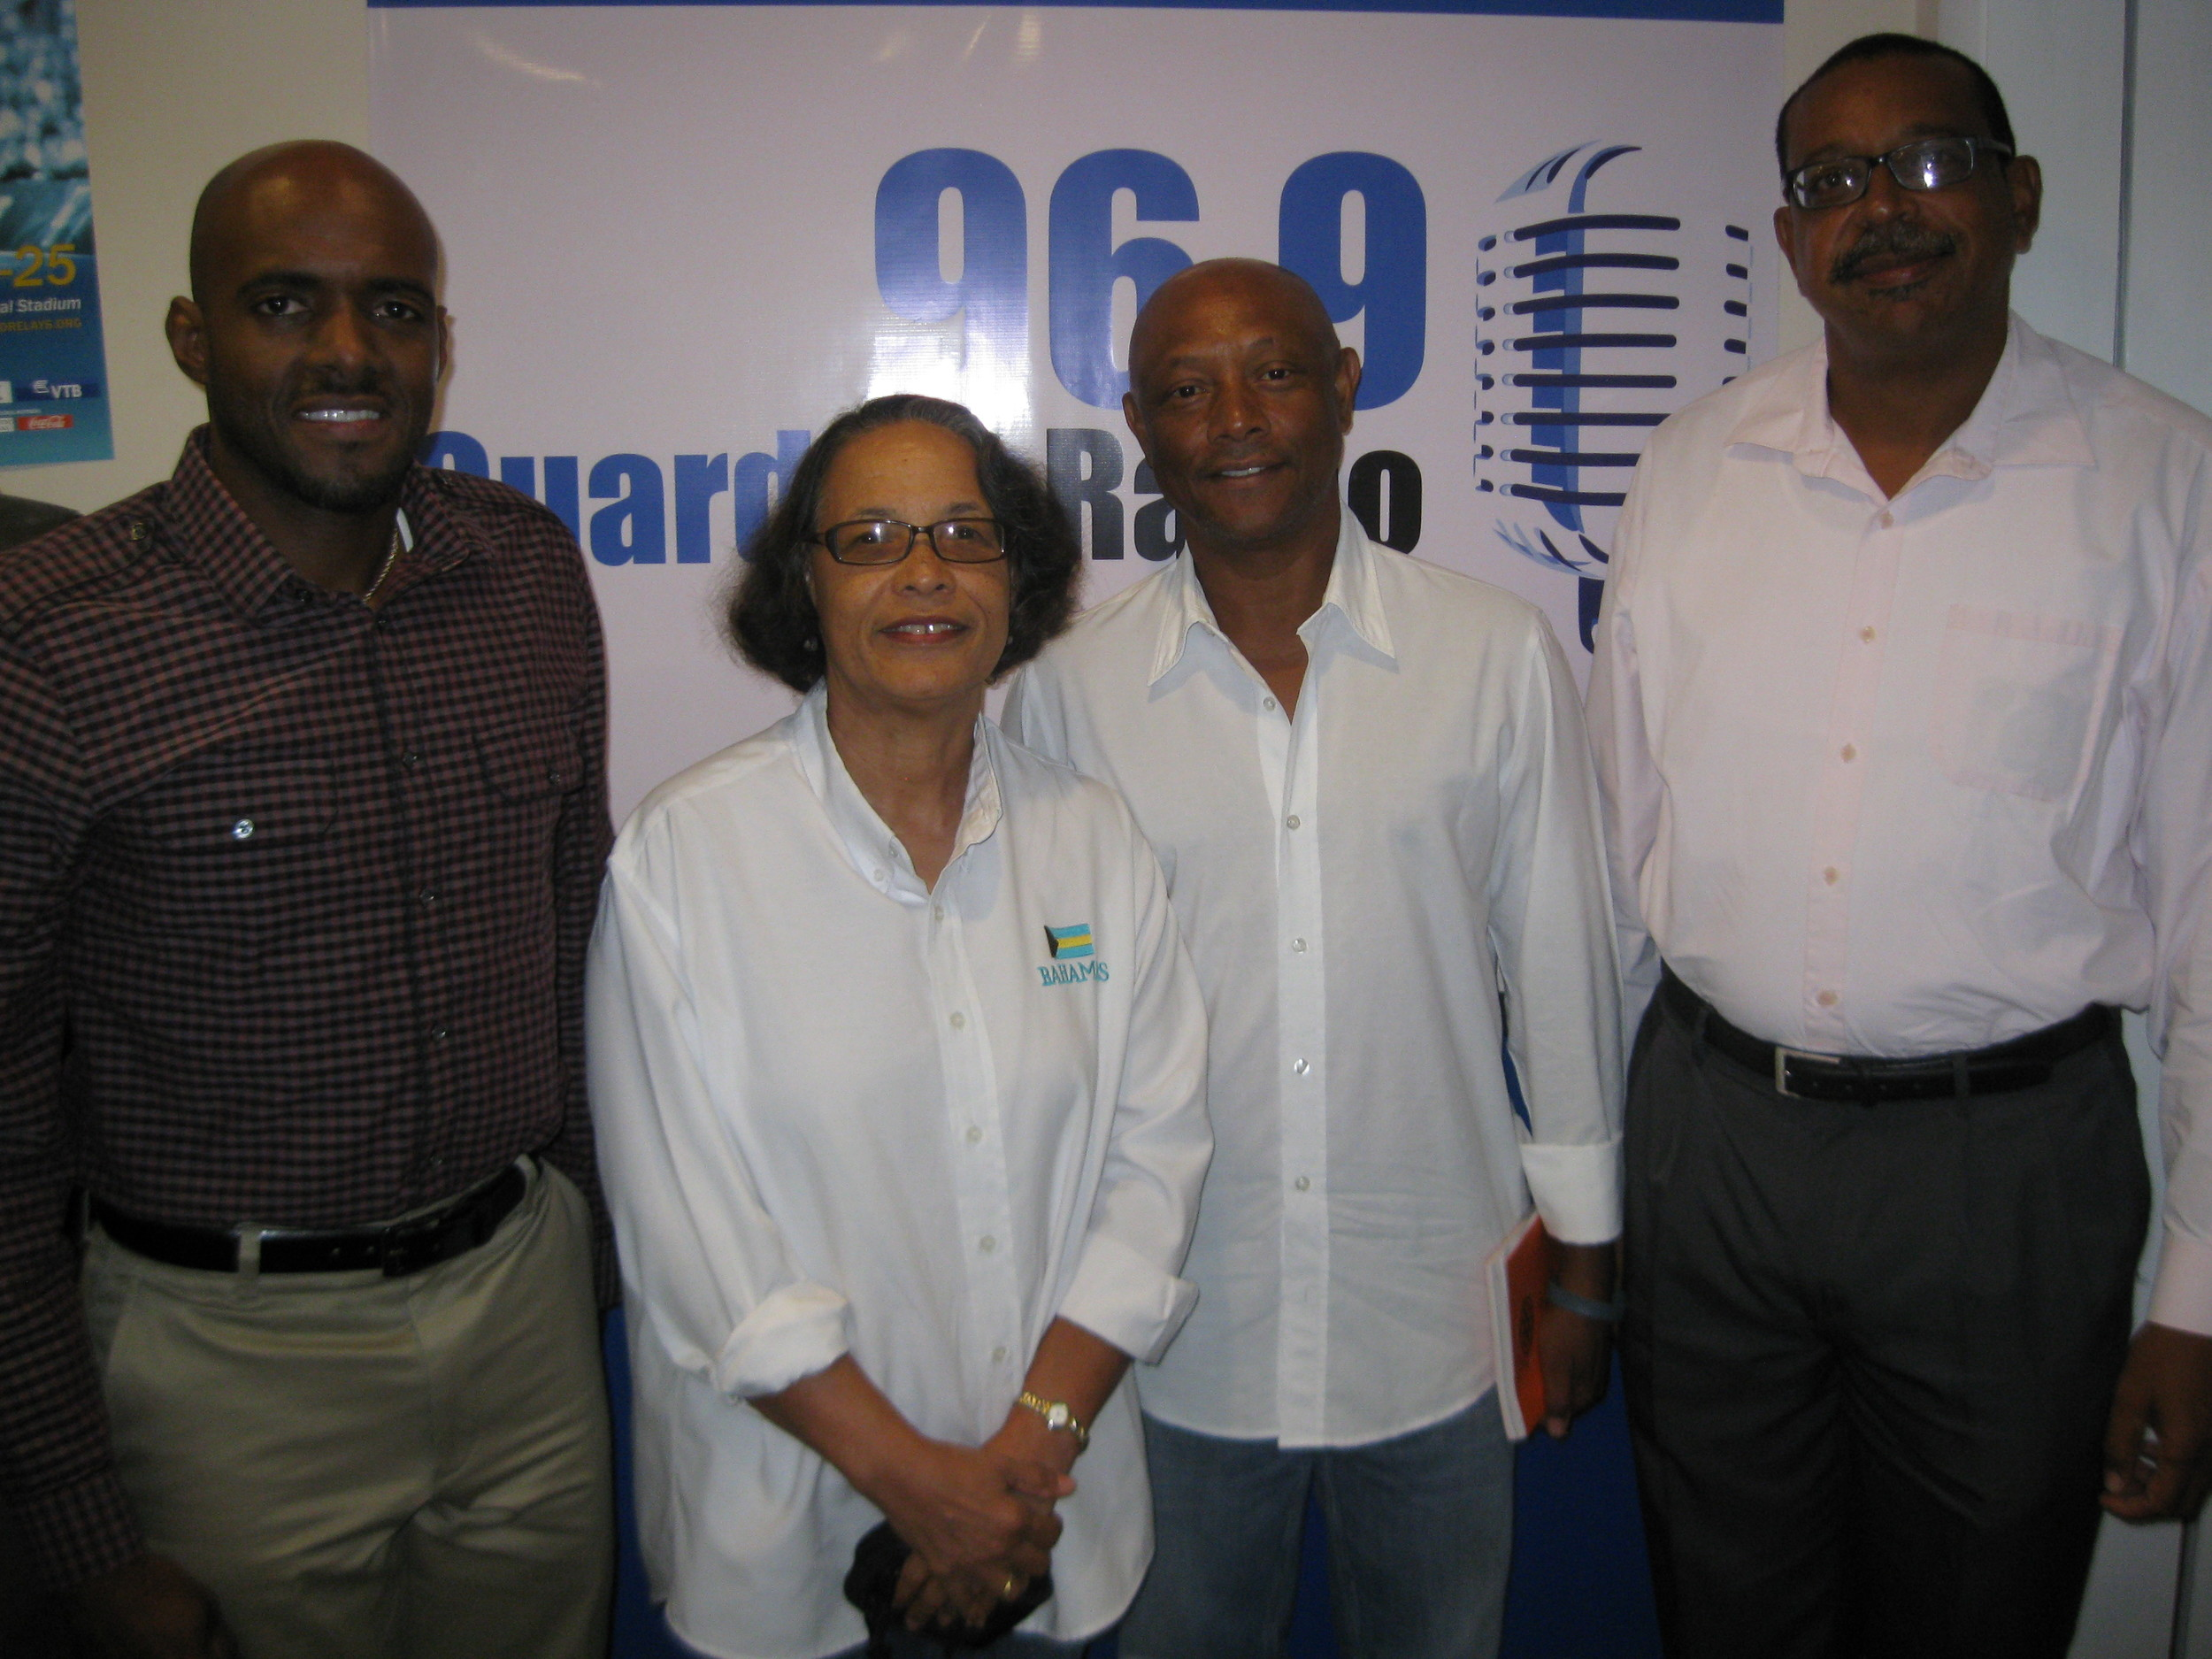 Dwight Strachan (left) and his co-host (right) with Pam and Antonius following the radio show this morning